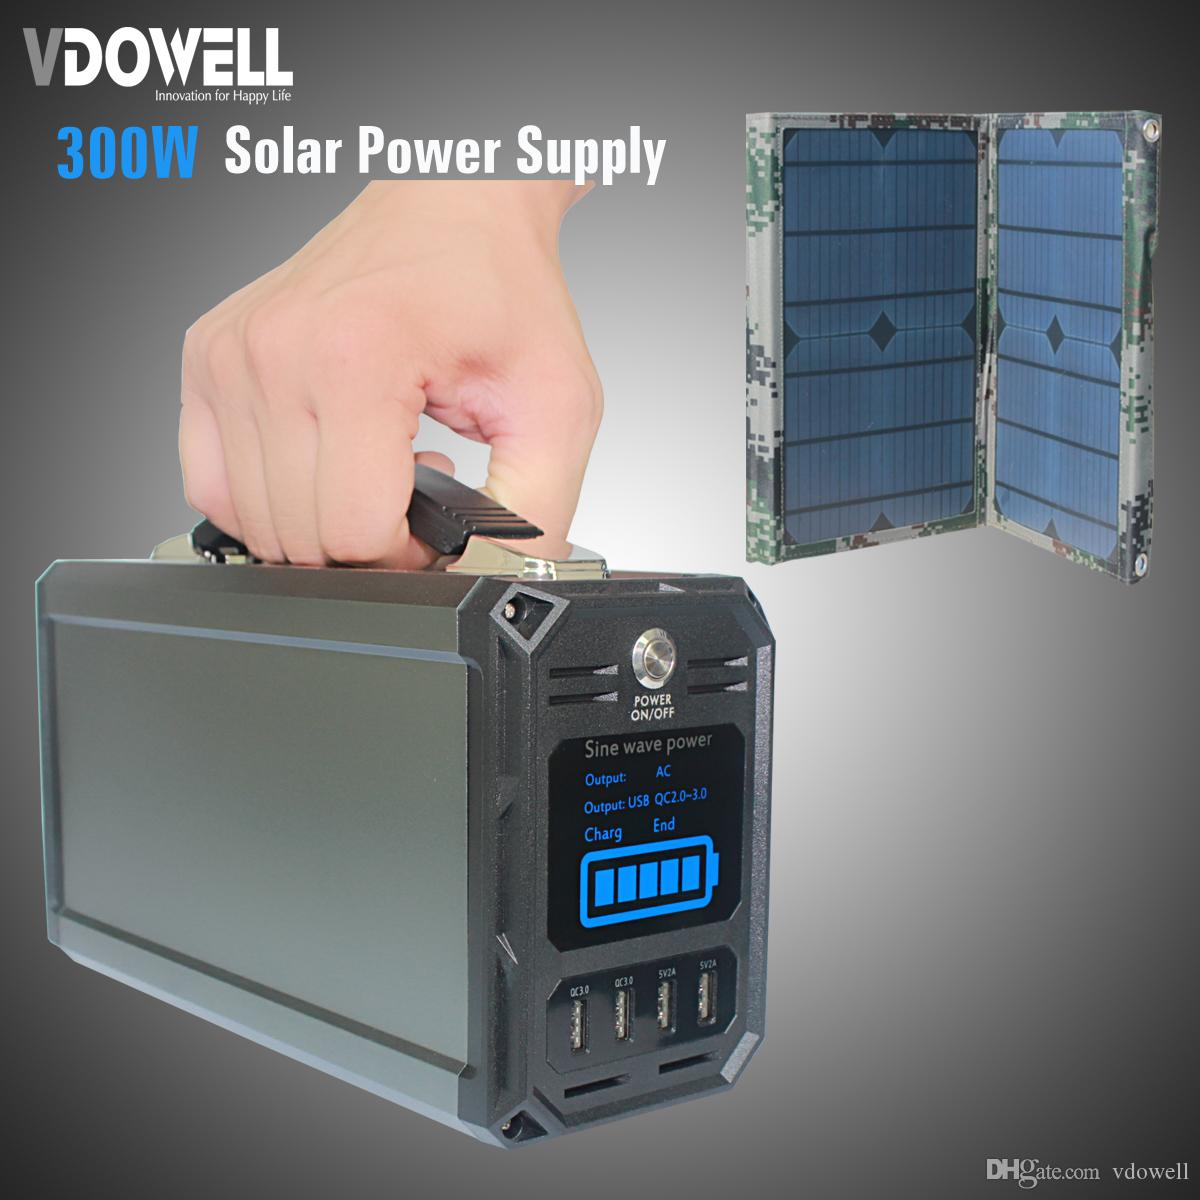 300wh 60000mah Solar Backup Power Source Battery Bank With 40w Controlling 110vac 5vdc Panel Output Ac 110v 220v Dc Usb Qc30 5v 2a For Outage Outdoors Multiple